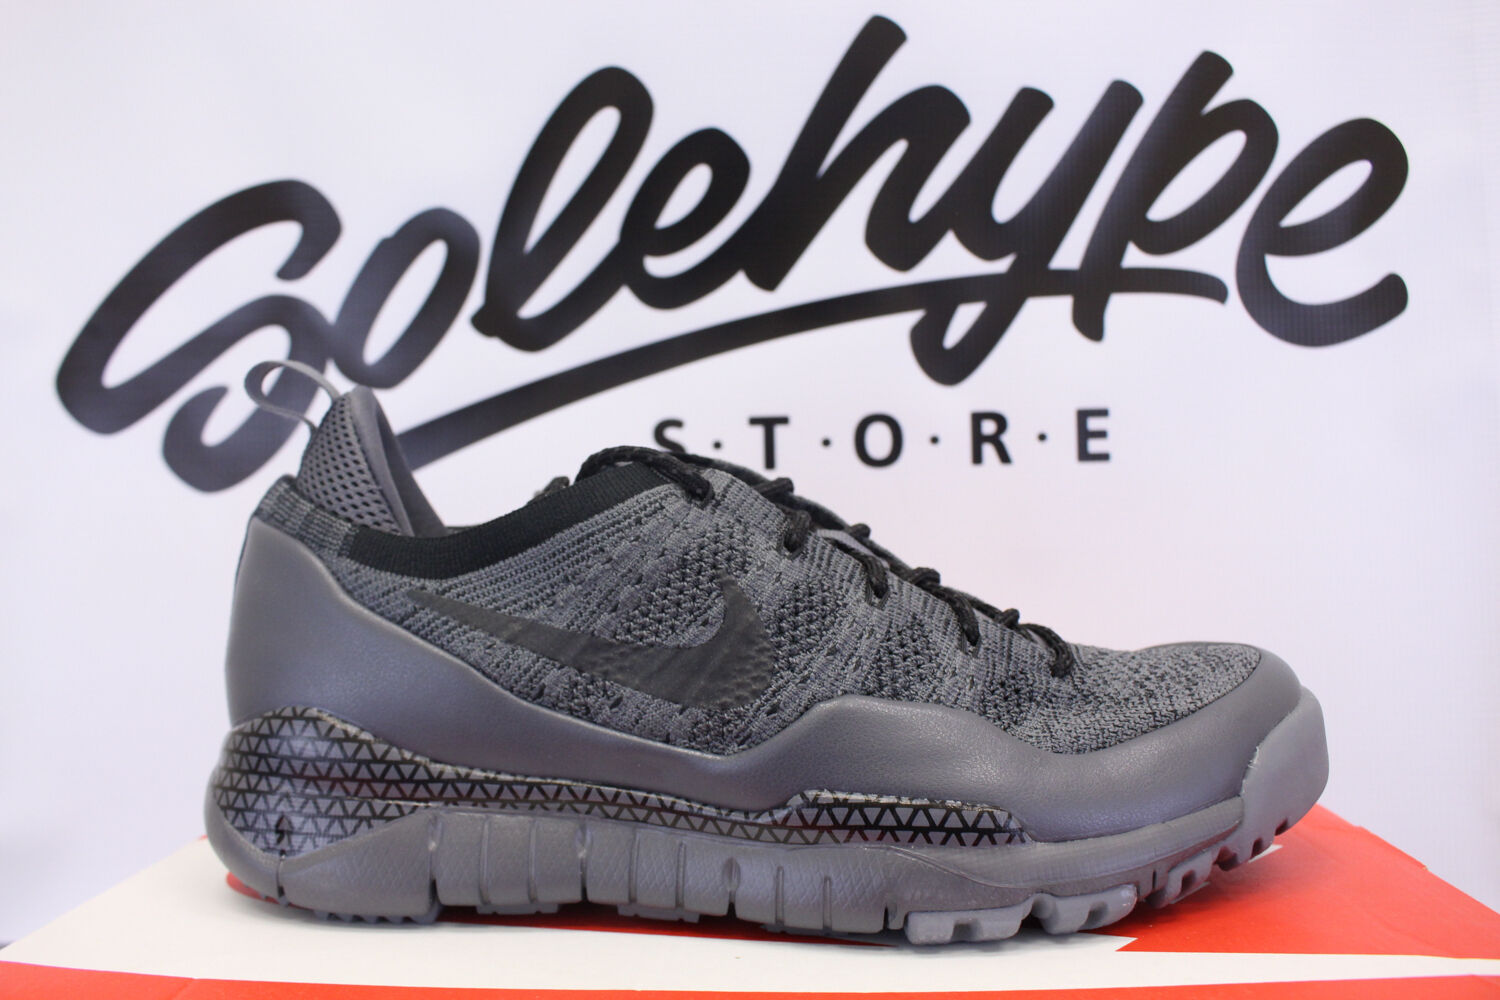 NIKE LUPINEK FLYKNIT LOW DARK COOL GREY BLACK 882685 001 SZ 9